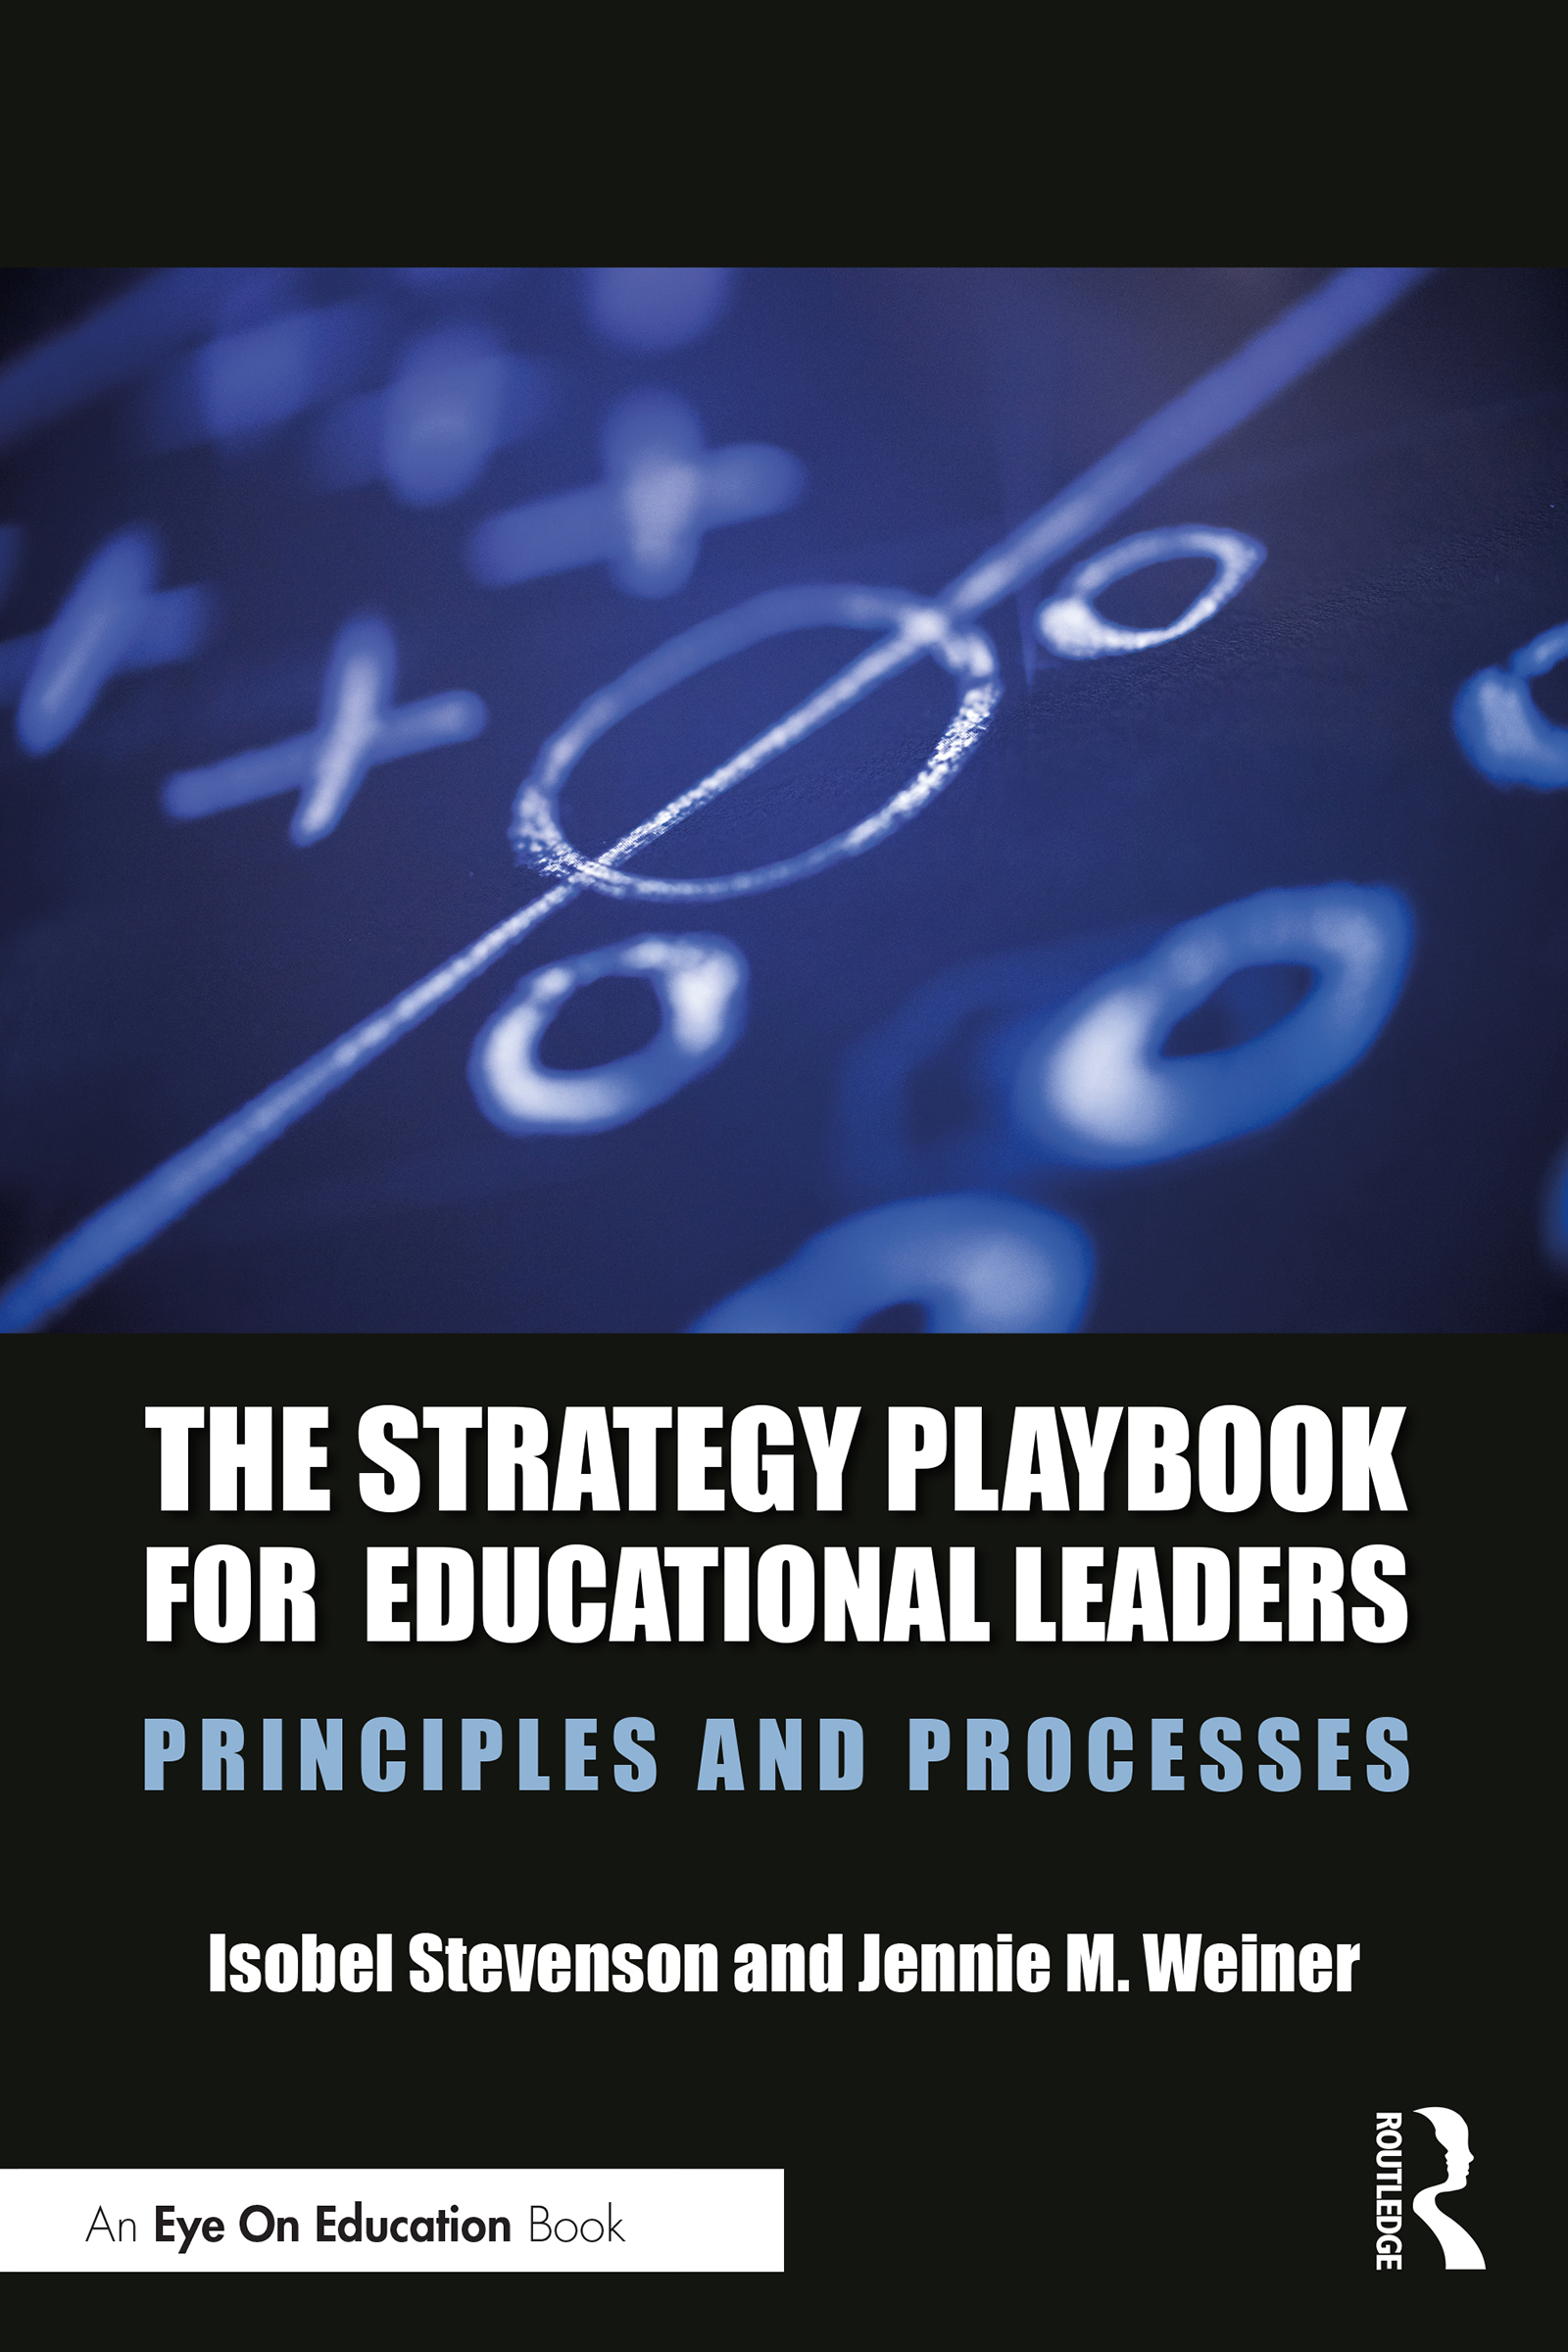 The Strategy Playbook for Educational Leaders